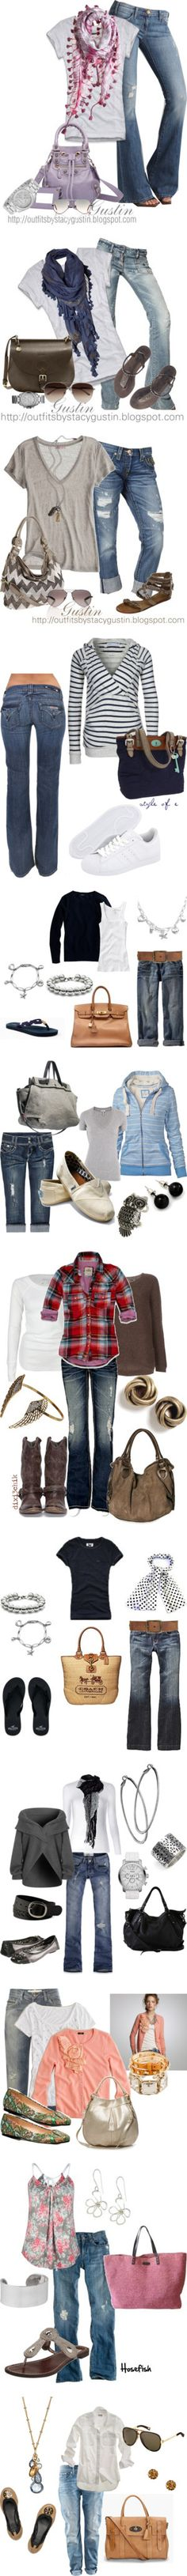 """Casual jean outfits"" by islandktty on Polyvore"